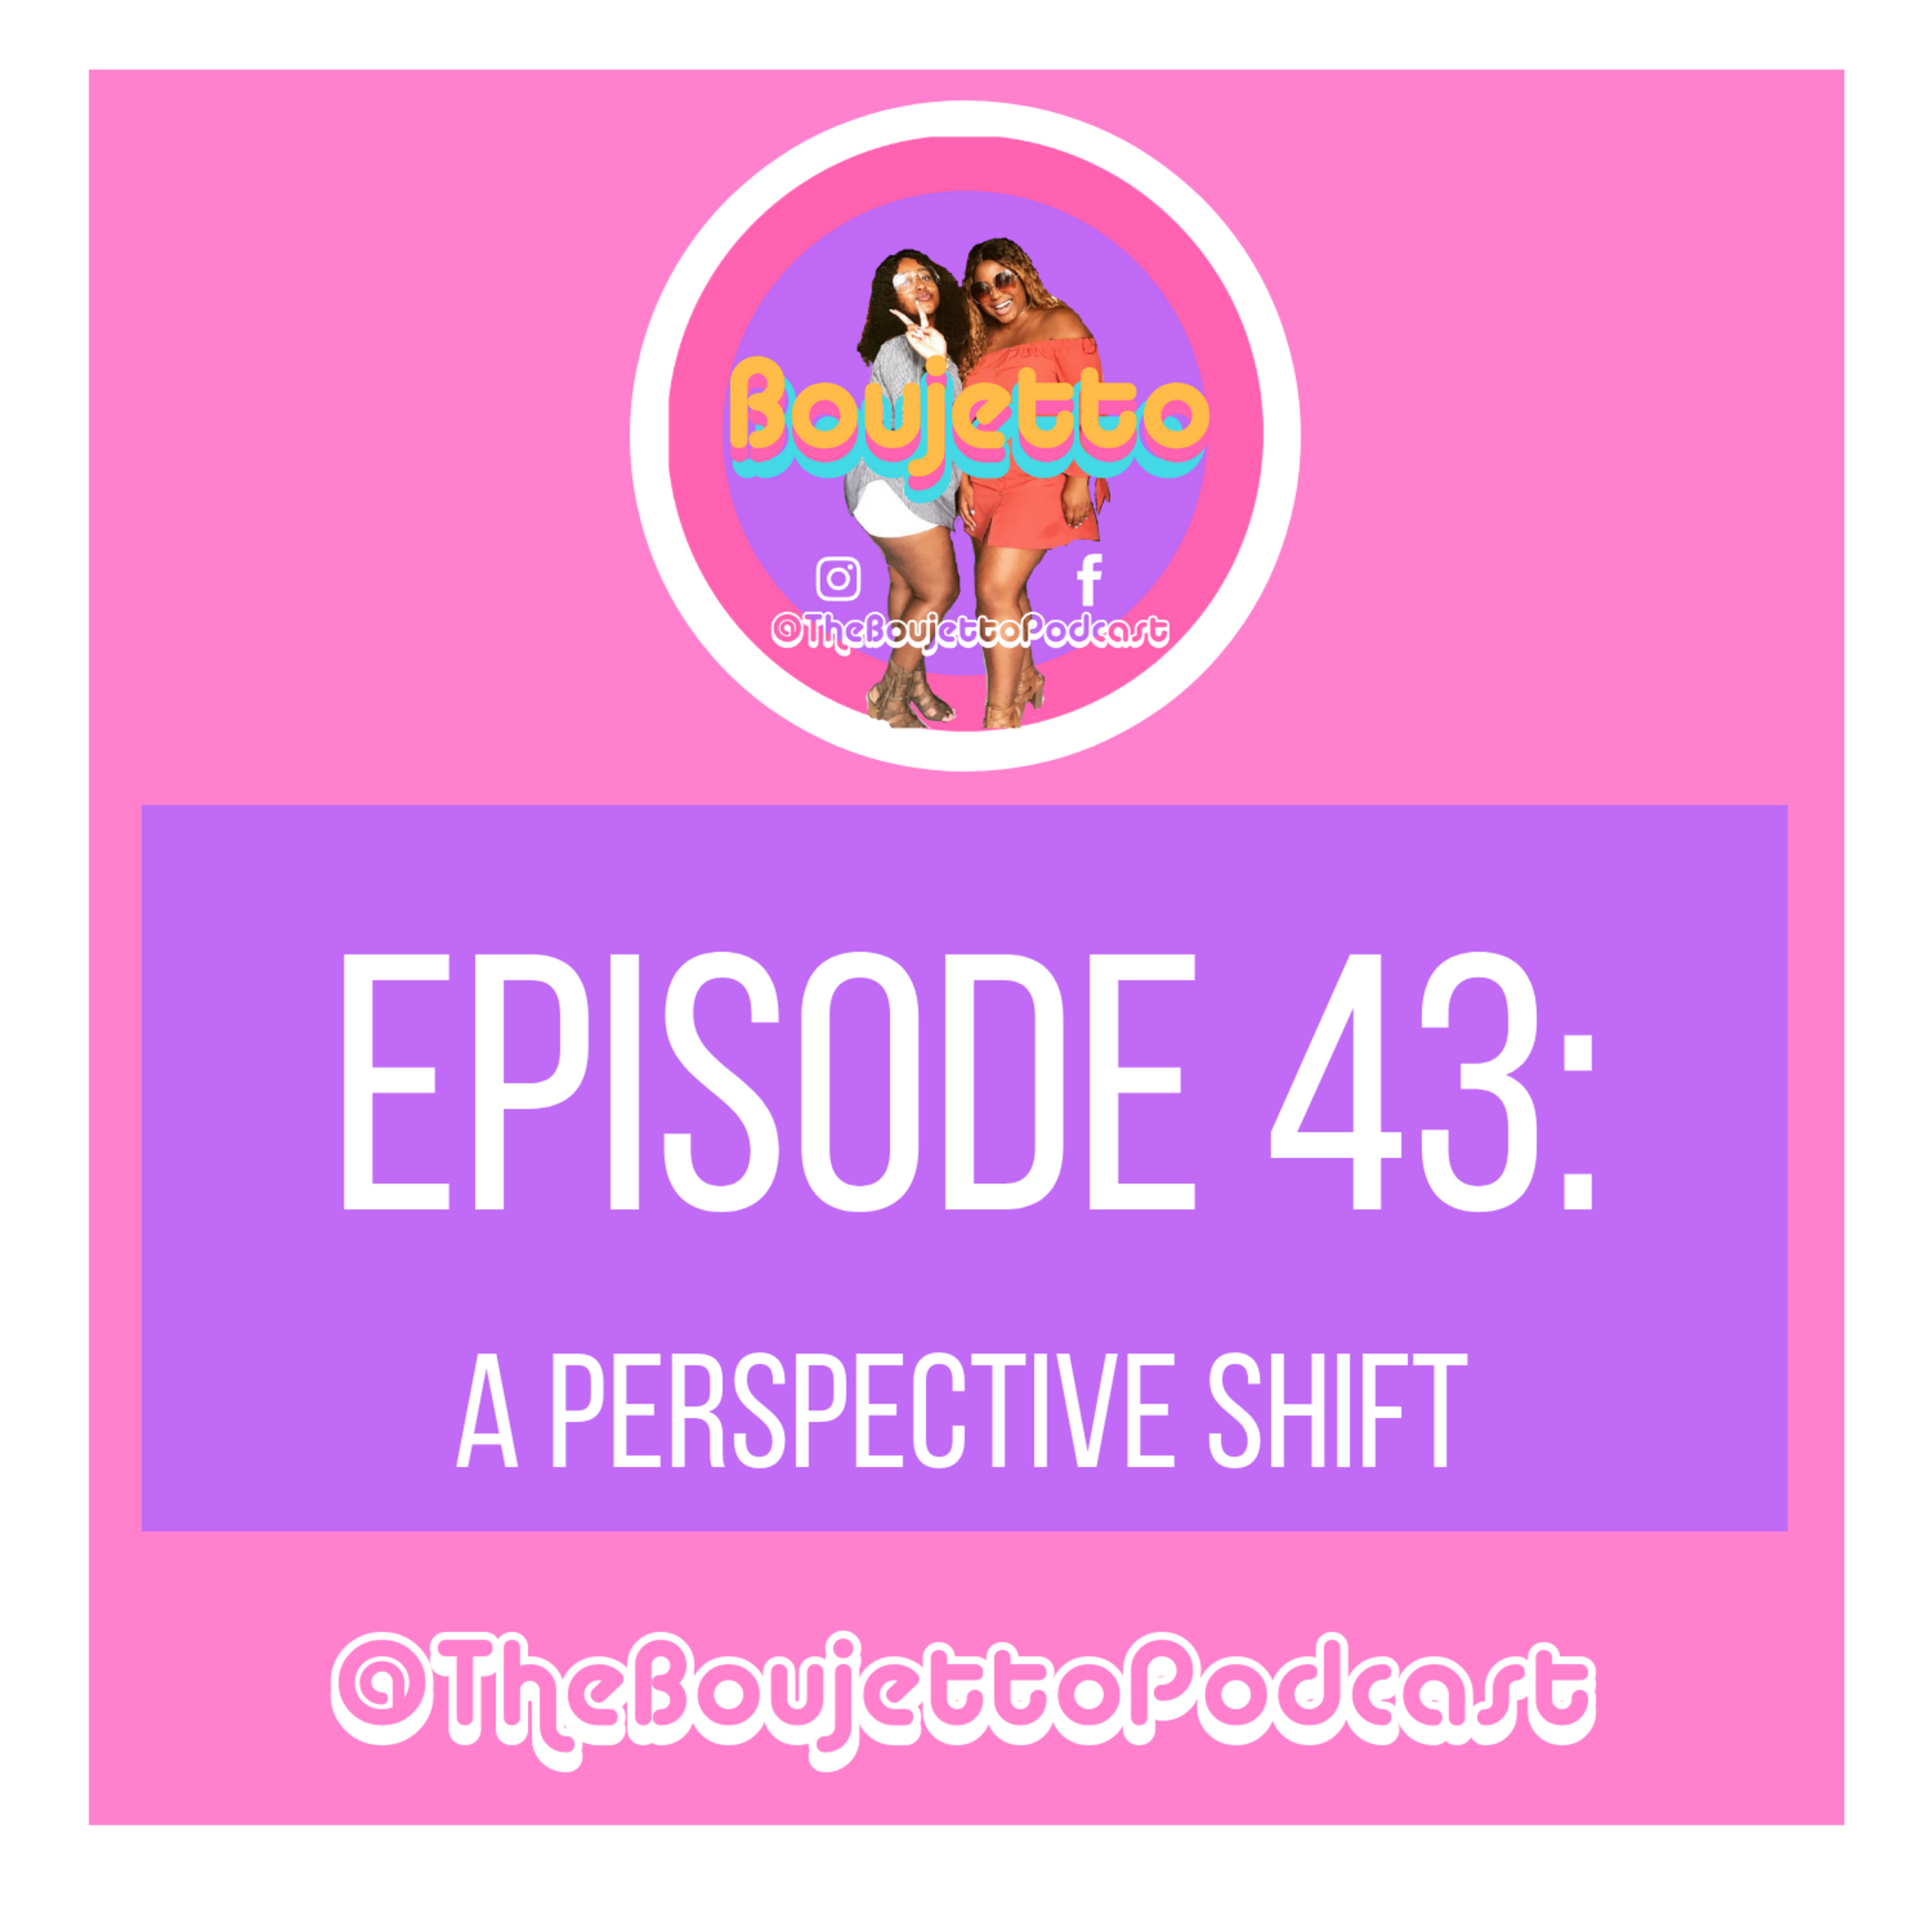 Episode 43: A Perspective Shift